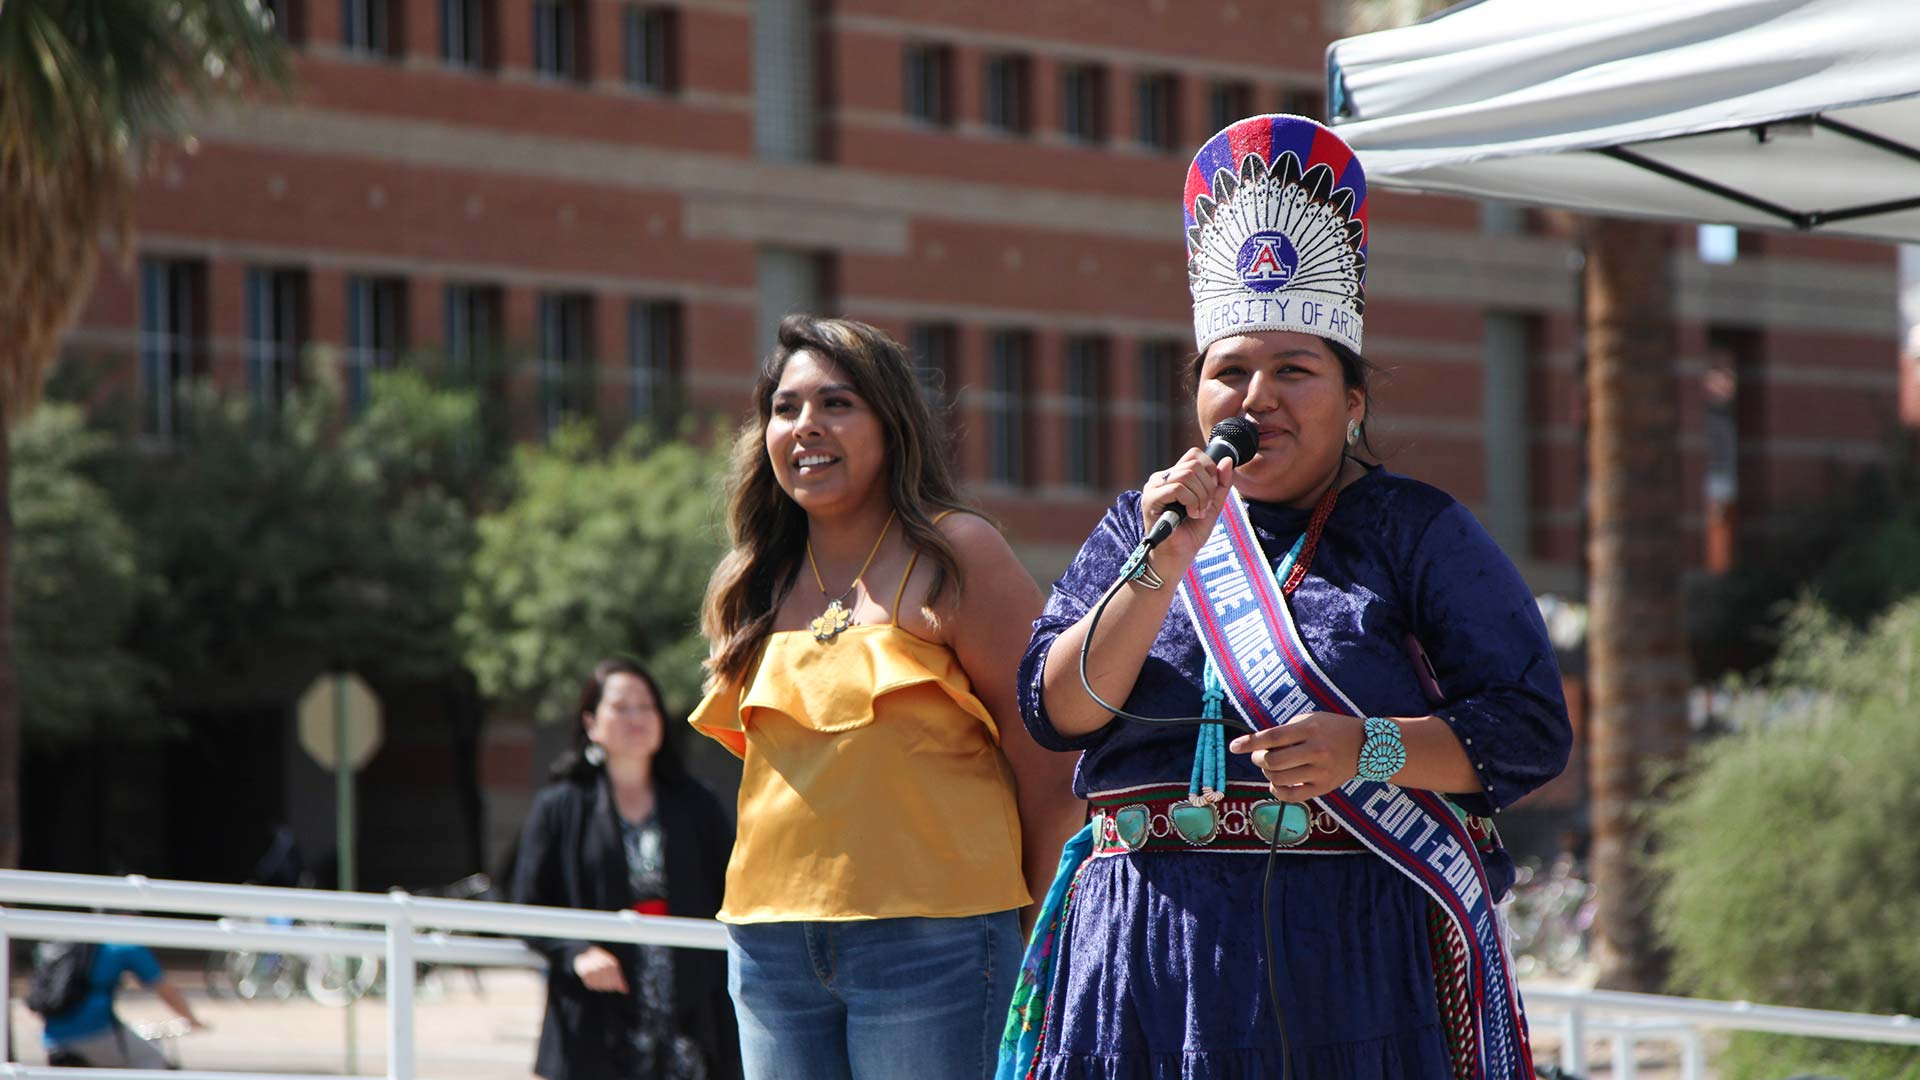 Miss Native American University of Arizona, right, speaks at an event on campus for Indigenous Peoples' Day, Oct. 8, 2018.